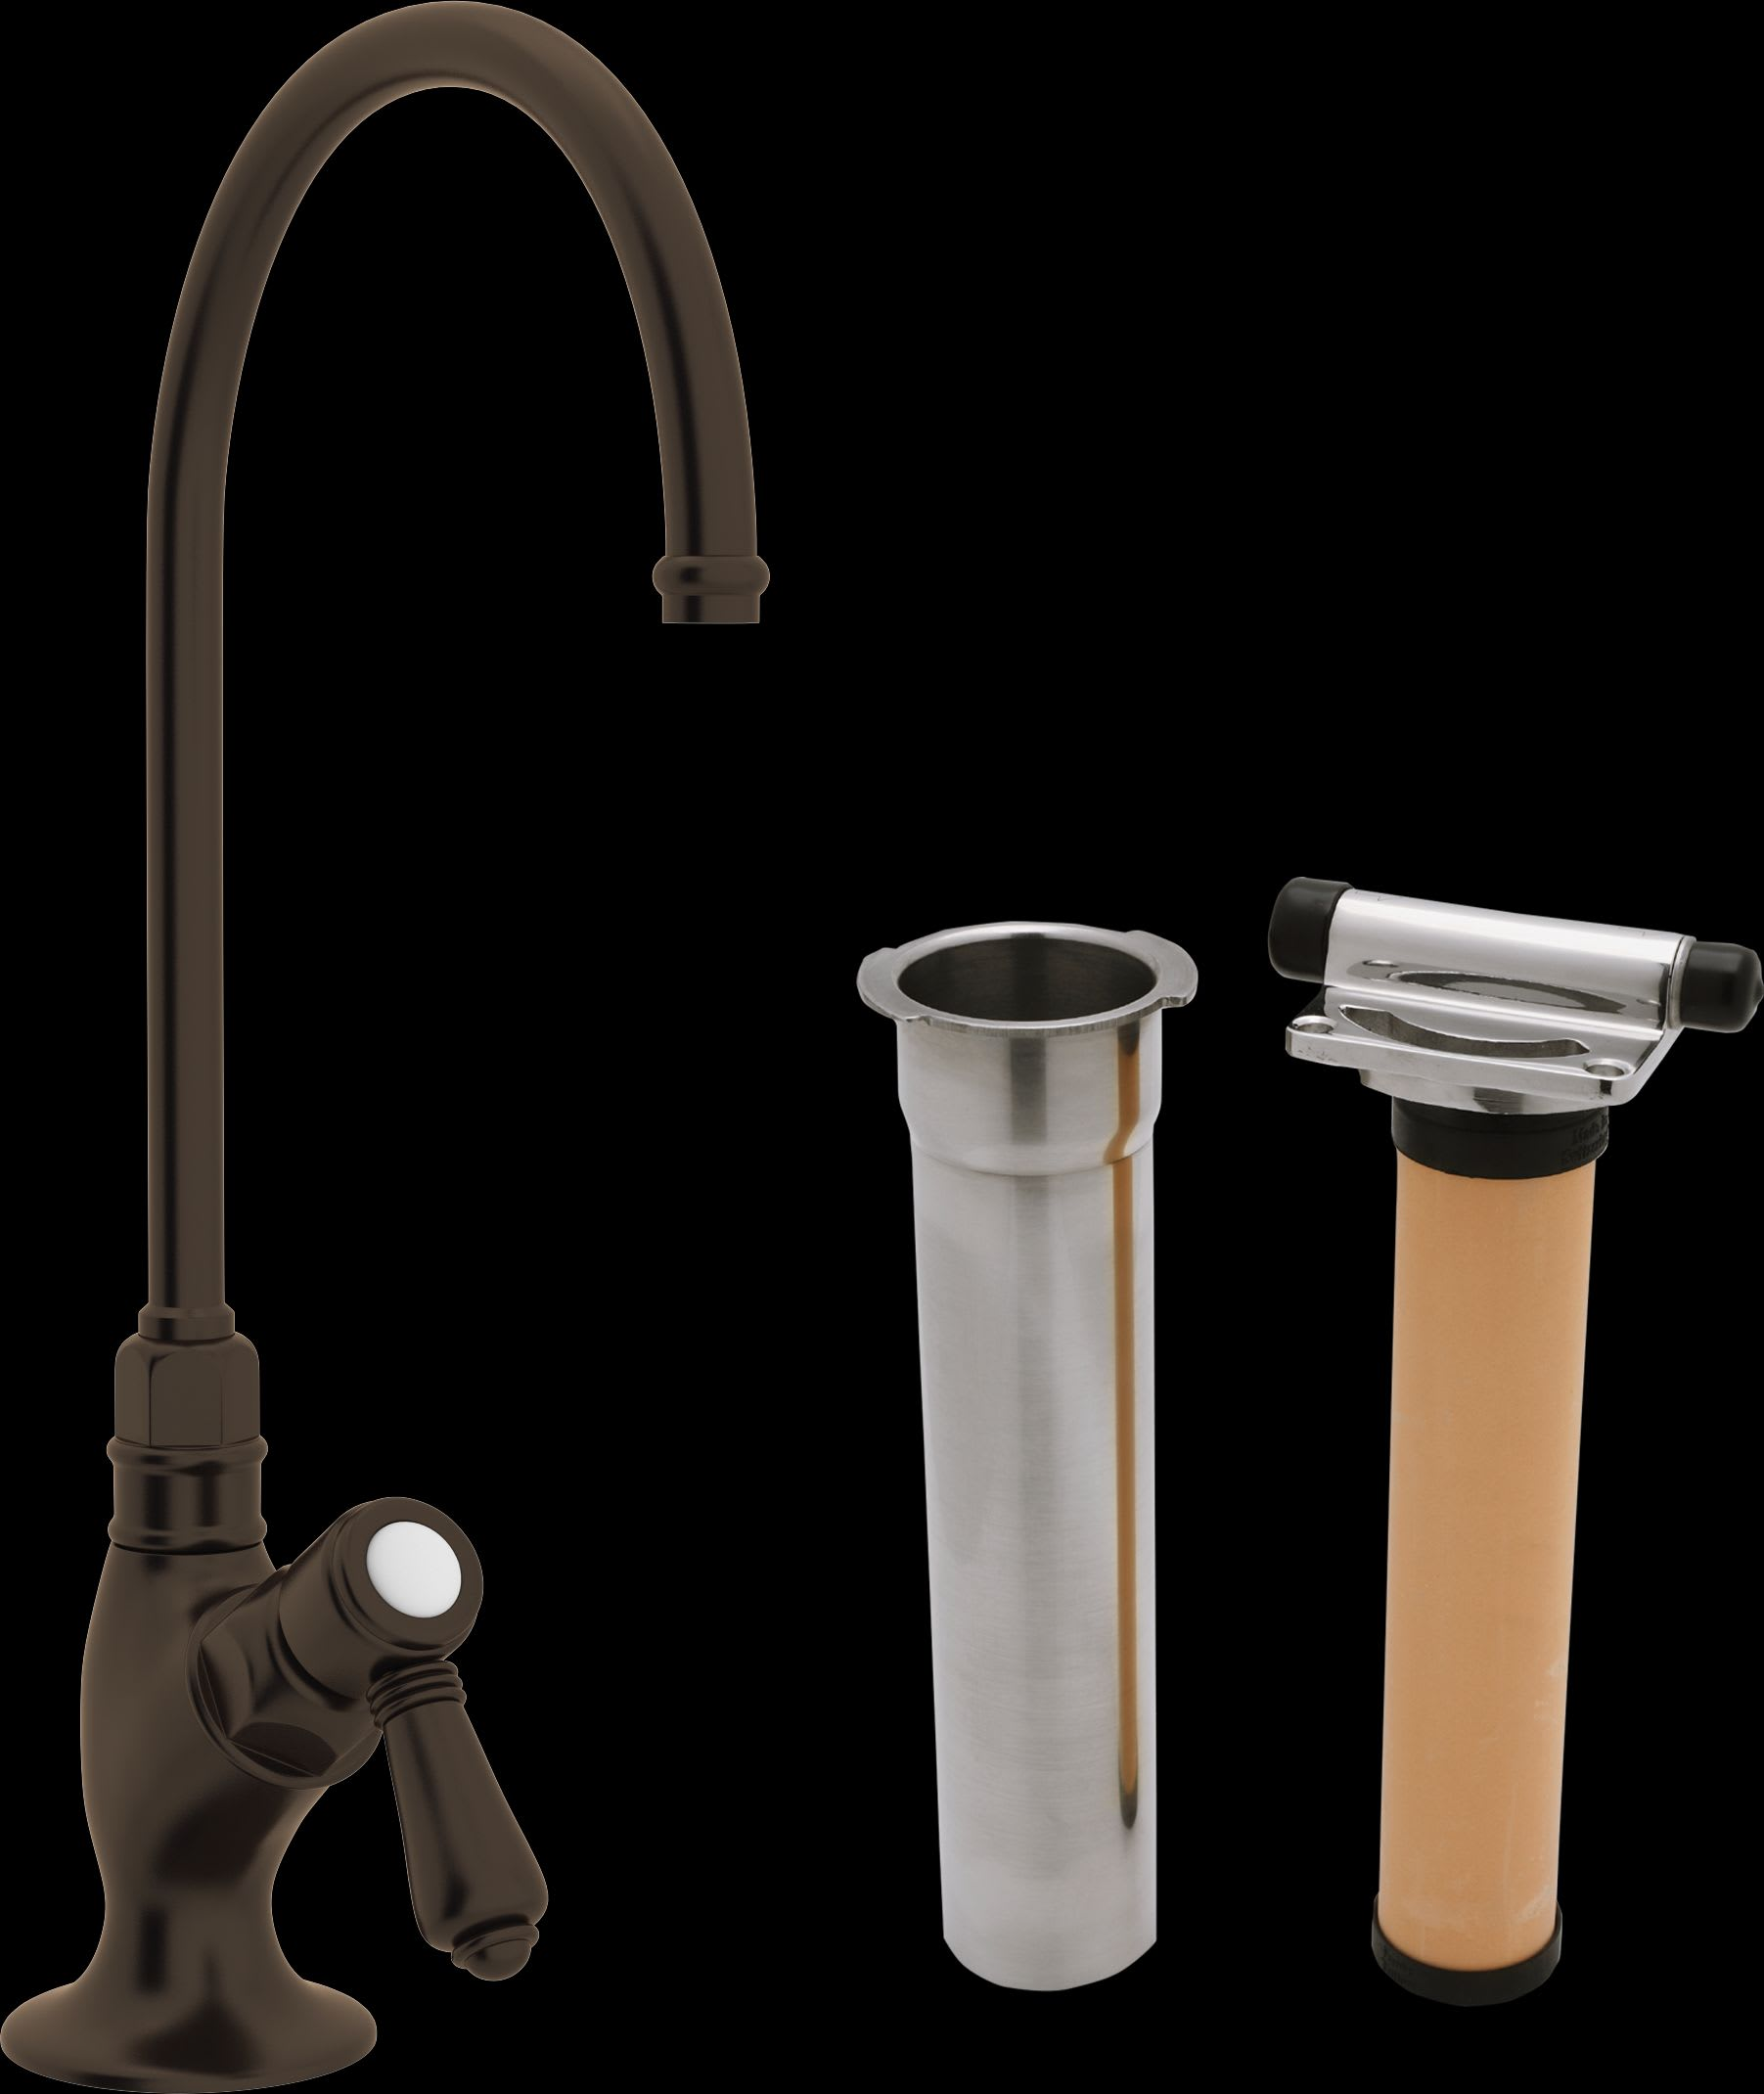 Rohl AKIT1635LMTCB-2 Tuscan Brass Country Kitchen Kitchen Faucet ...